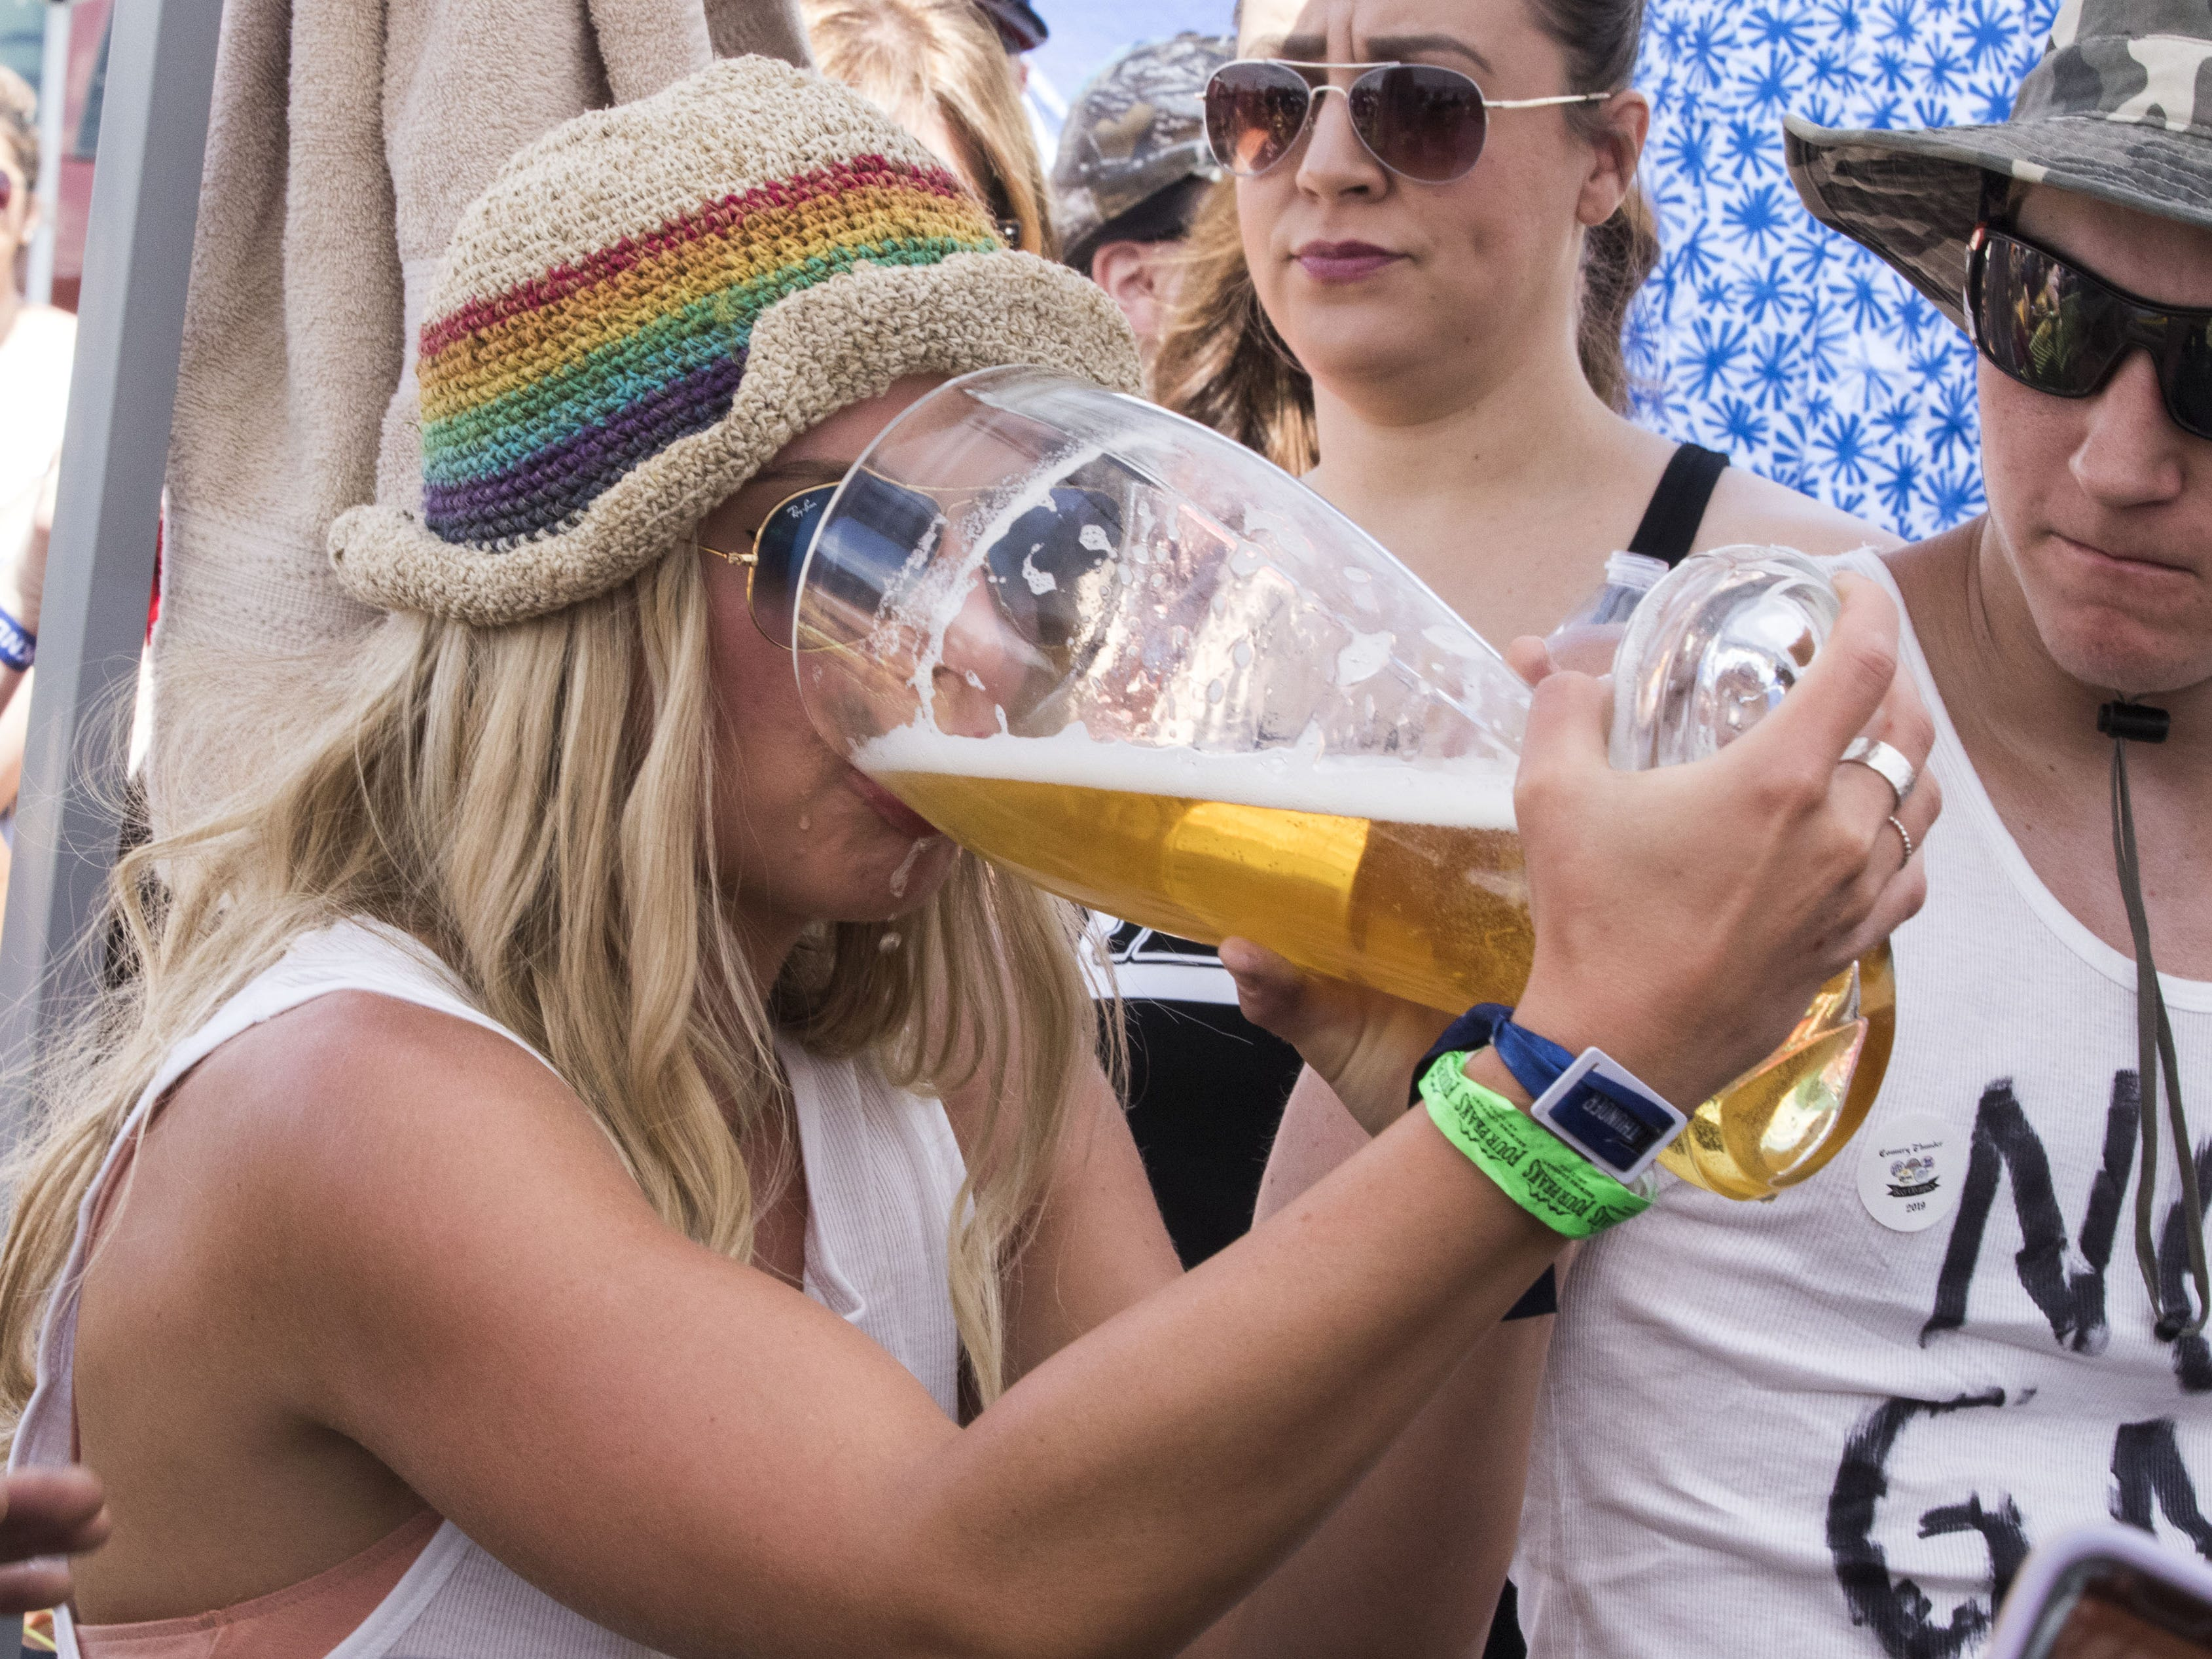 A Beer Olympian chugs her beer during the beer chugging game at Country Thunder Arizona Friday, April 12, 2019, in Florence, Ariz.